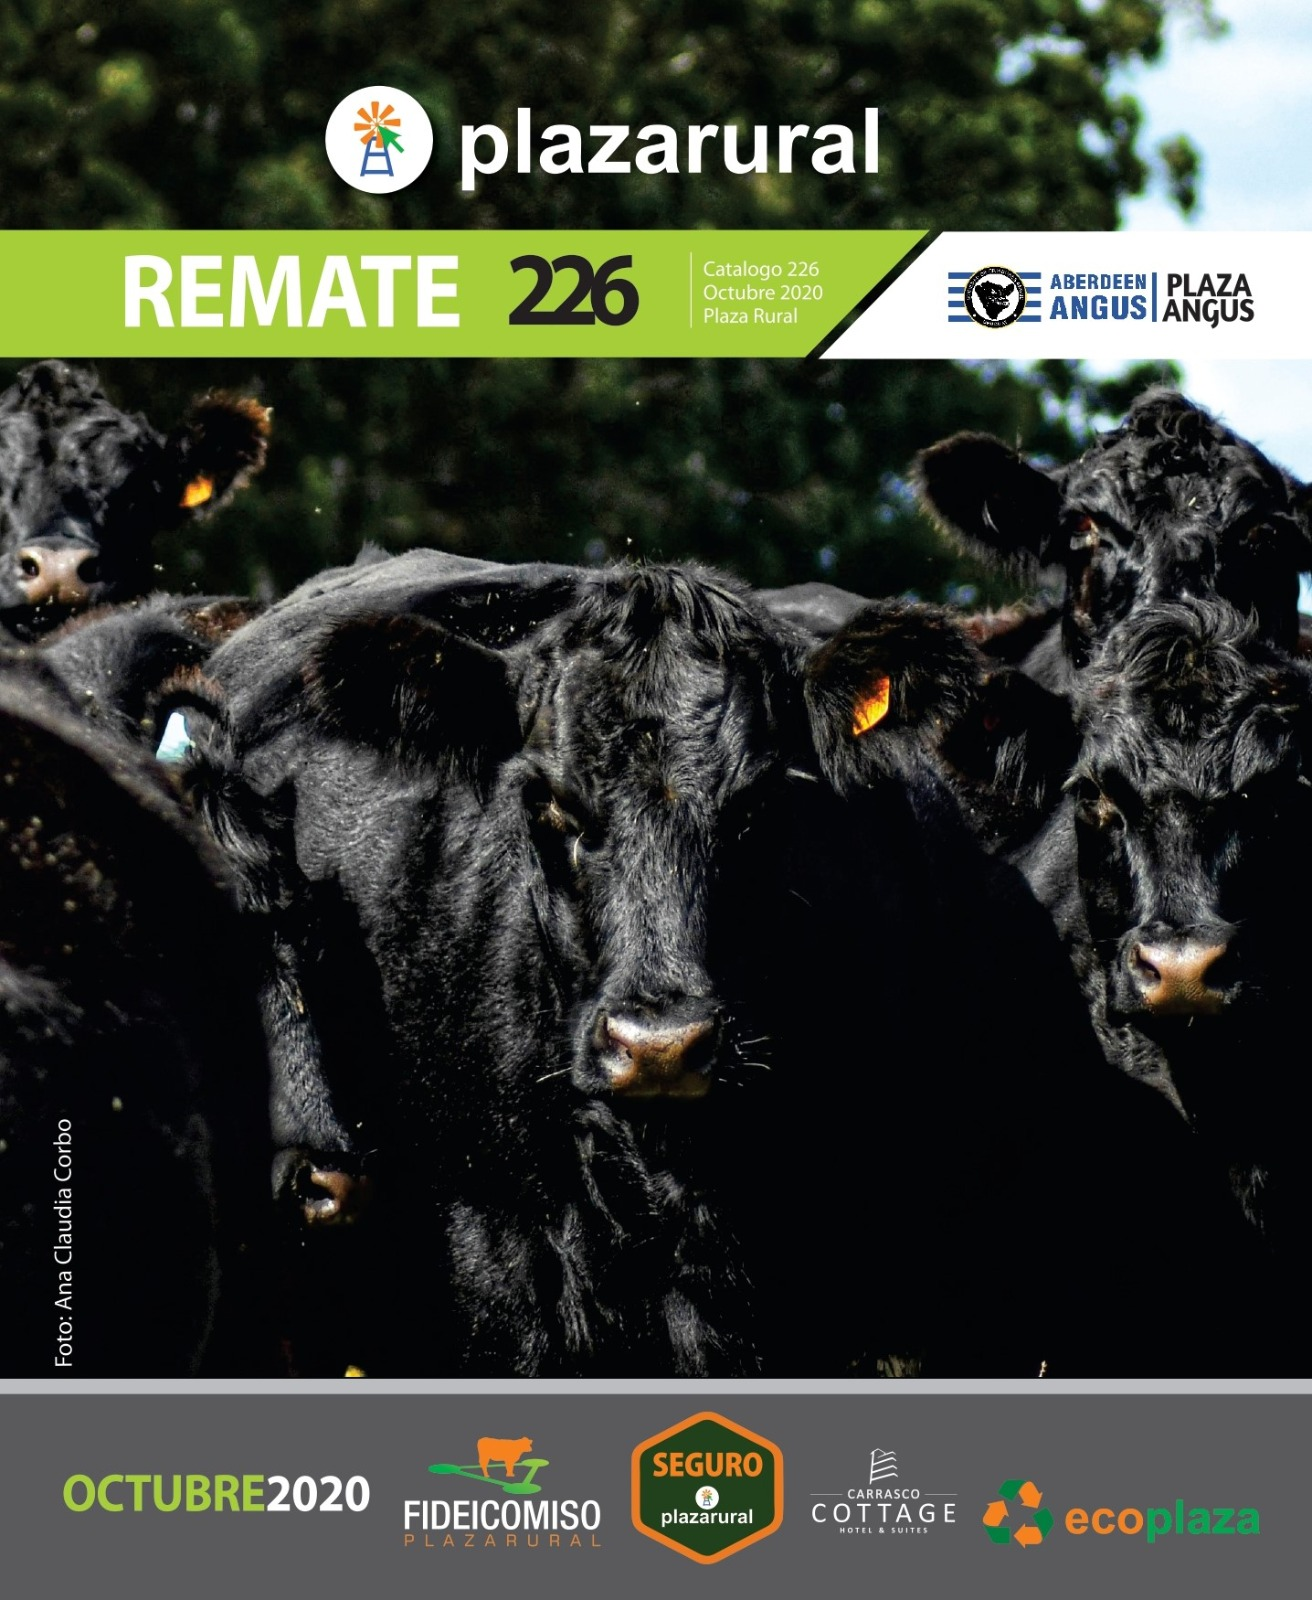 Afiche 226º Remate Plaza Rural